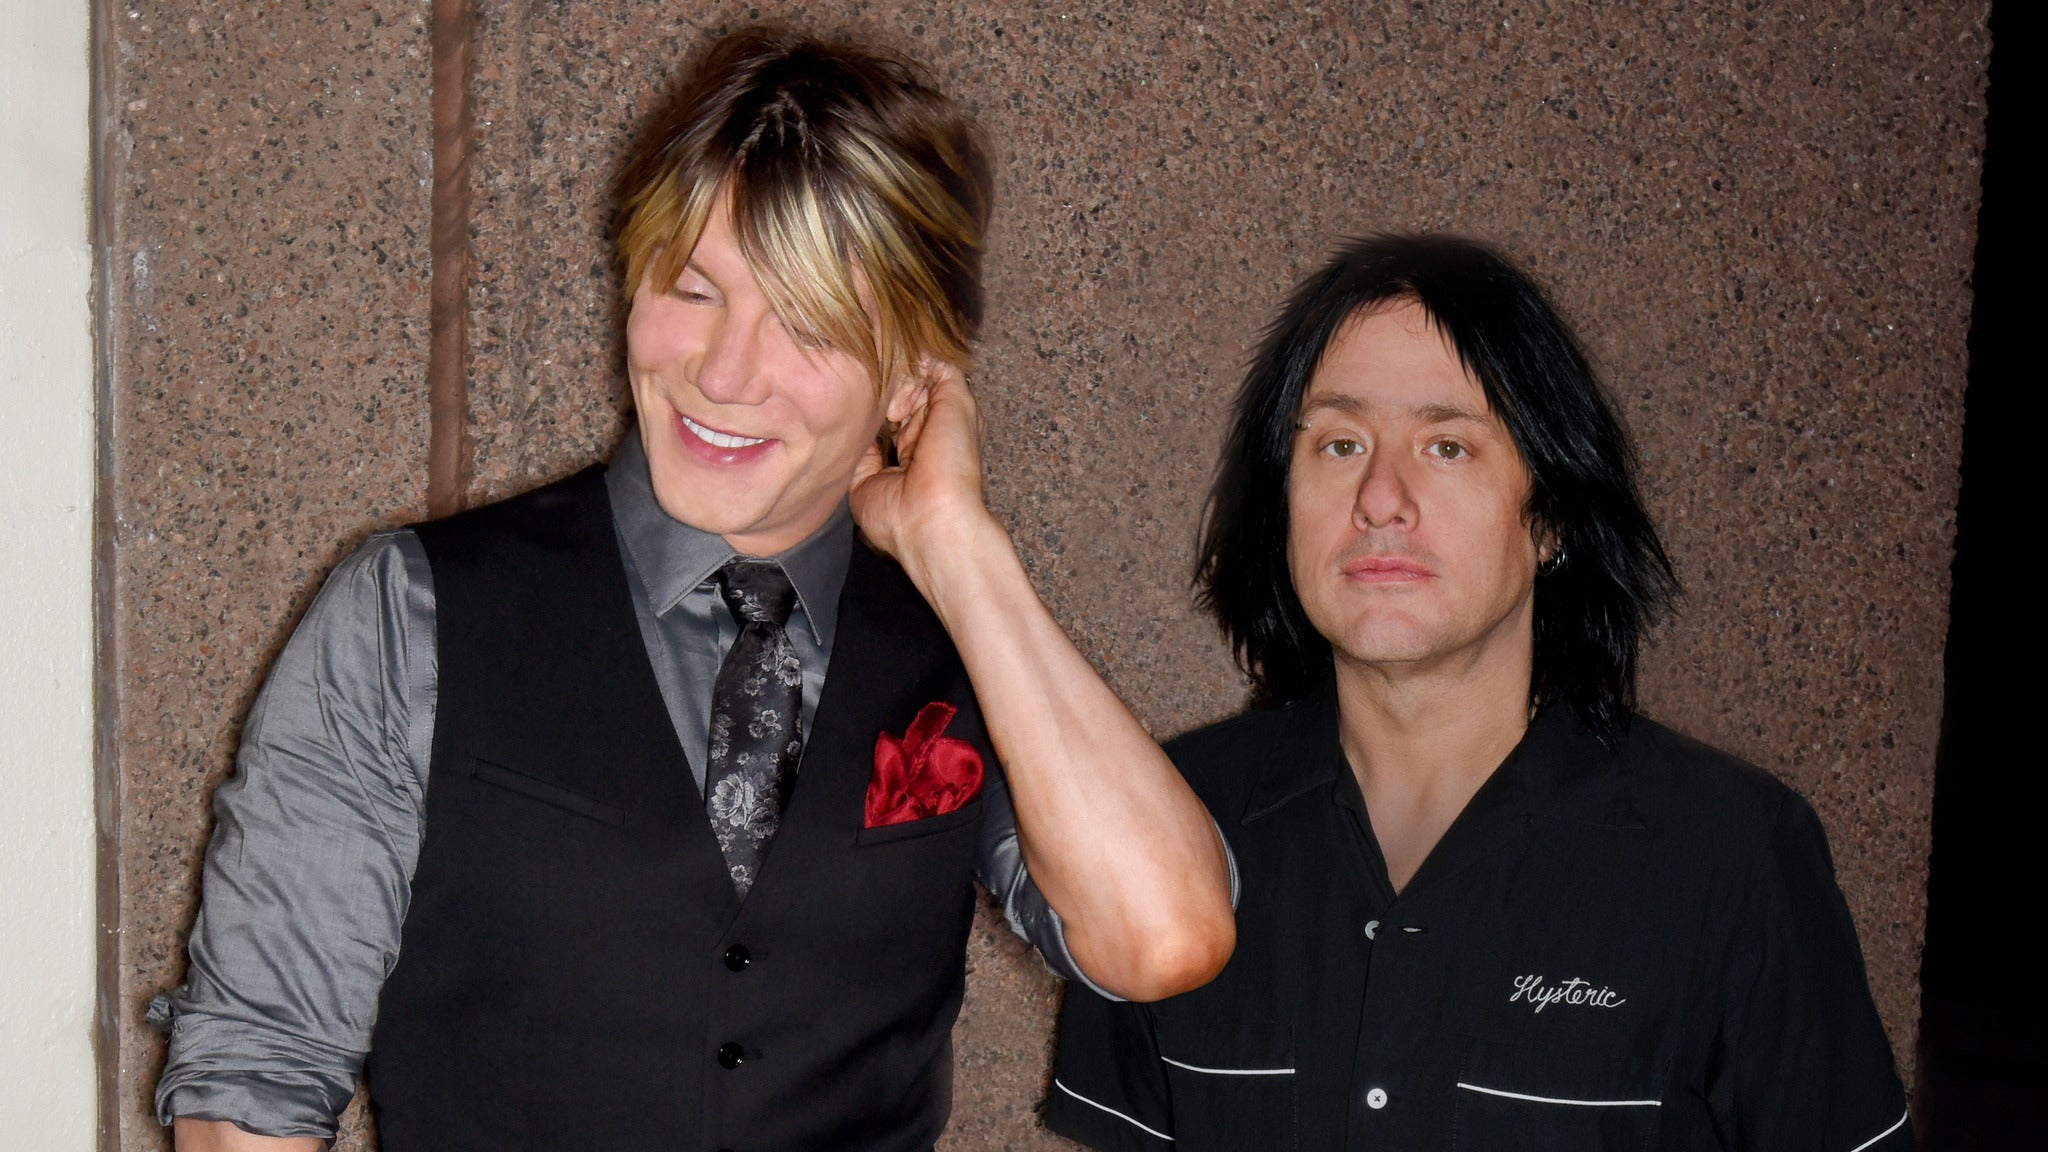 Goo Goo Dolls at Red Rocks Amphitheatre - Morrison, CO 80465